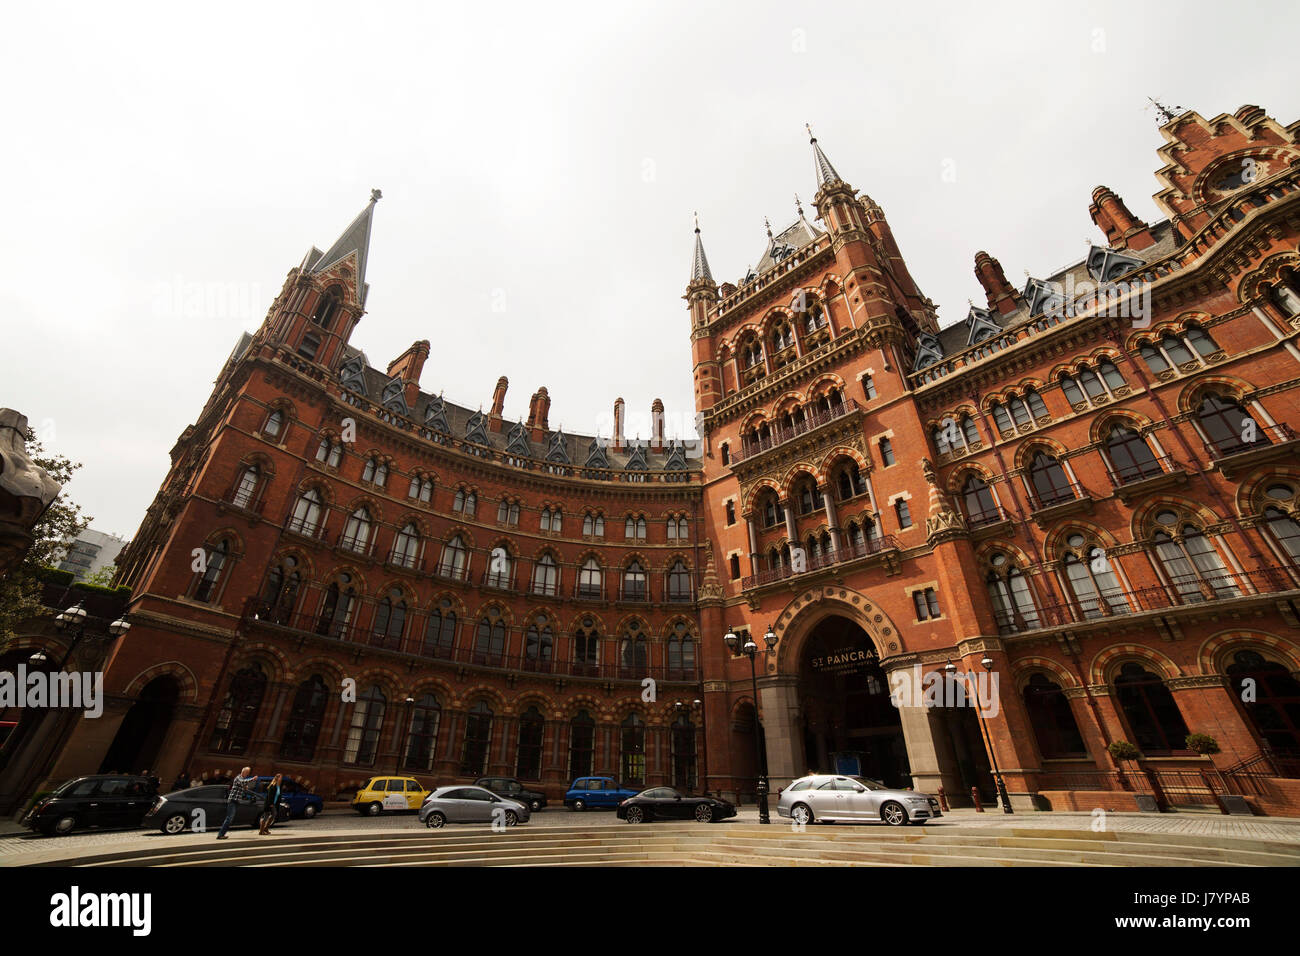 Cars park outside of the St Pancras Renaissance Hotel in London, England. The neo-Gothic building was constructed - Stock Image